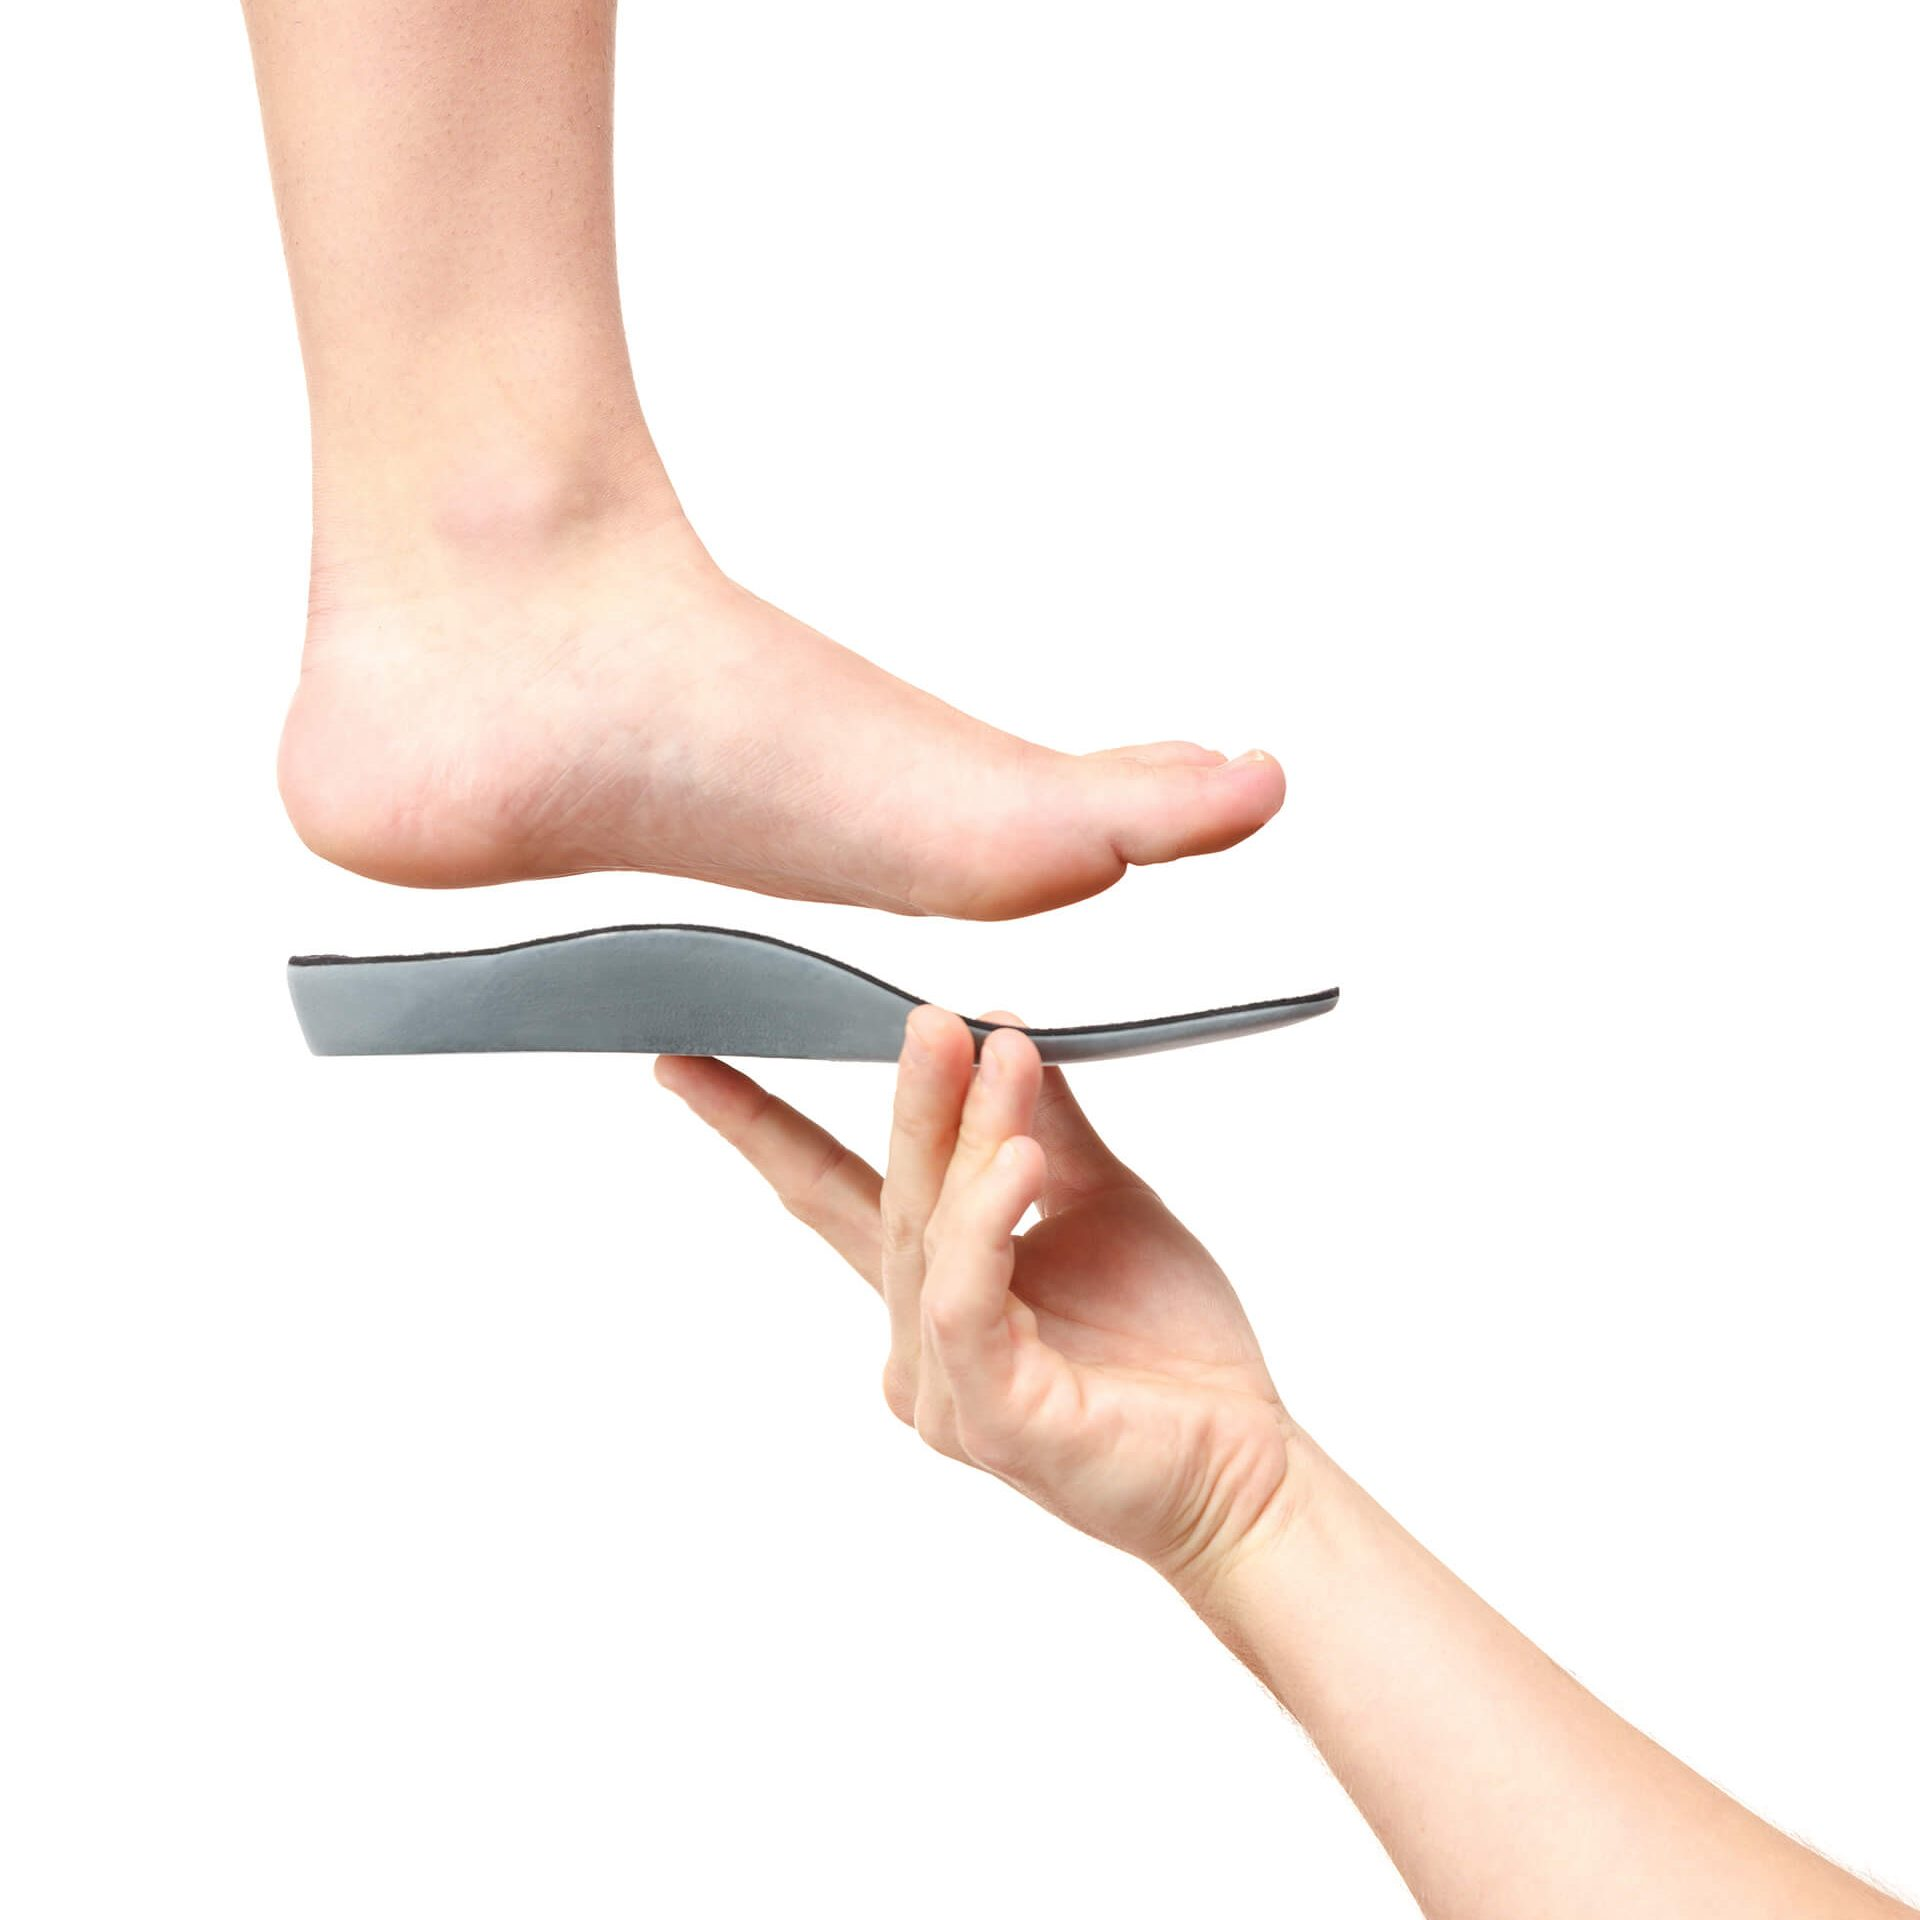 Custom Foot Orthotics to fit